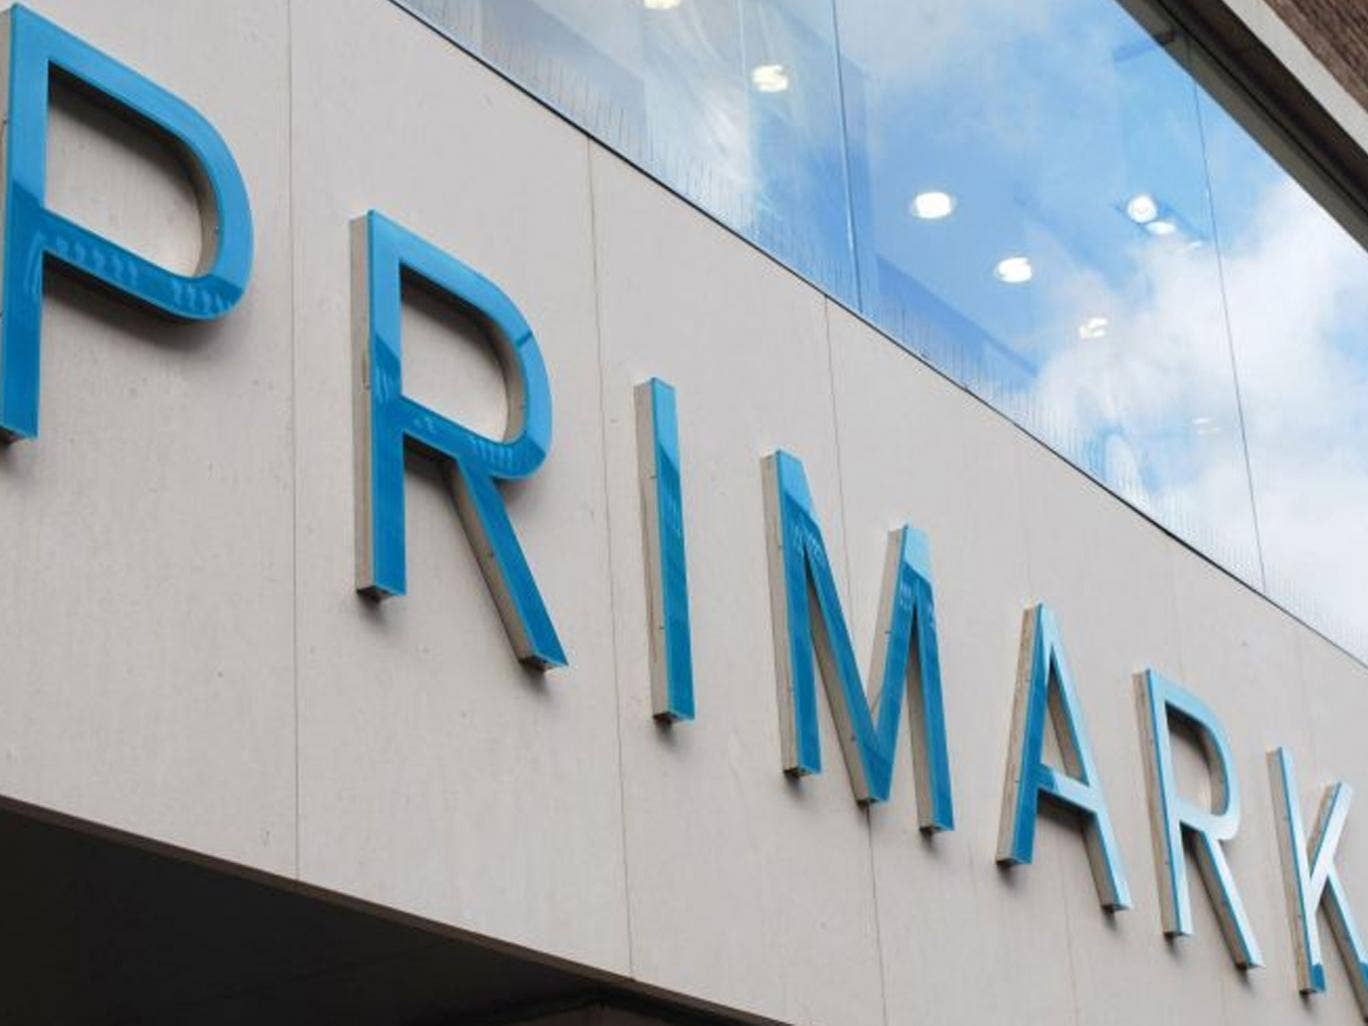 Another storming performance from the value fashion chain Primark sweetened AB Foods sugar sales